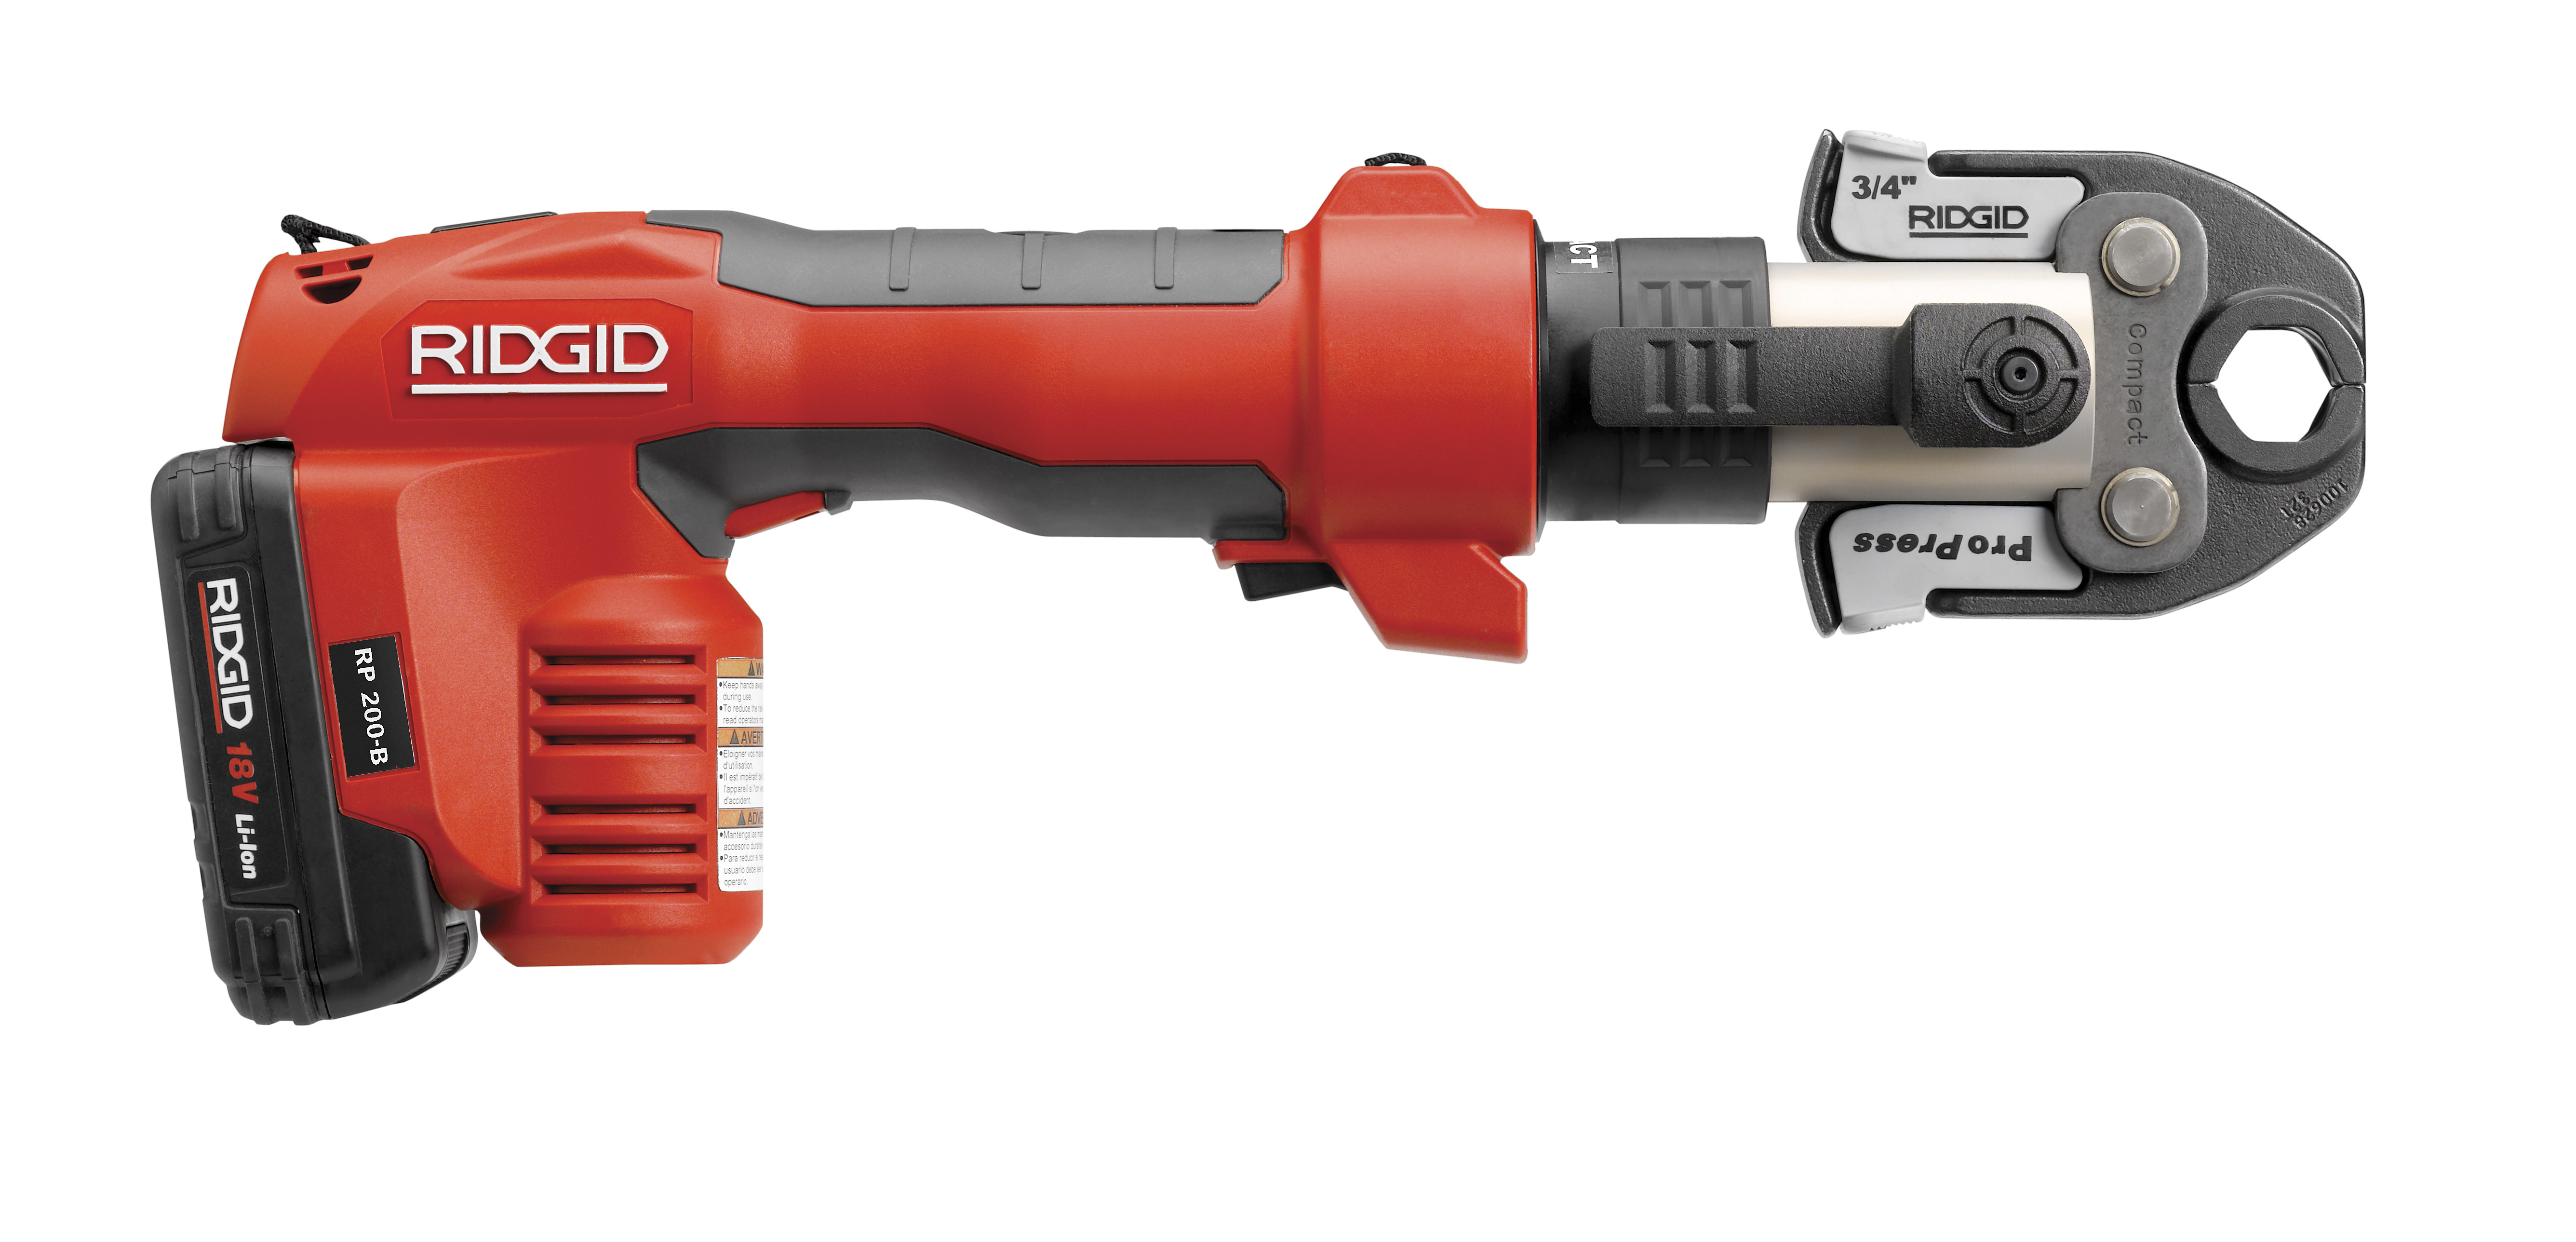 Ridgid 43428 RP 200 ProPress Tool with Jaws  1/2 to 1 1/4  - Battery Operated